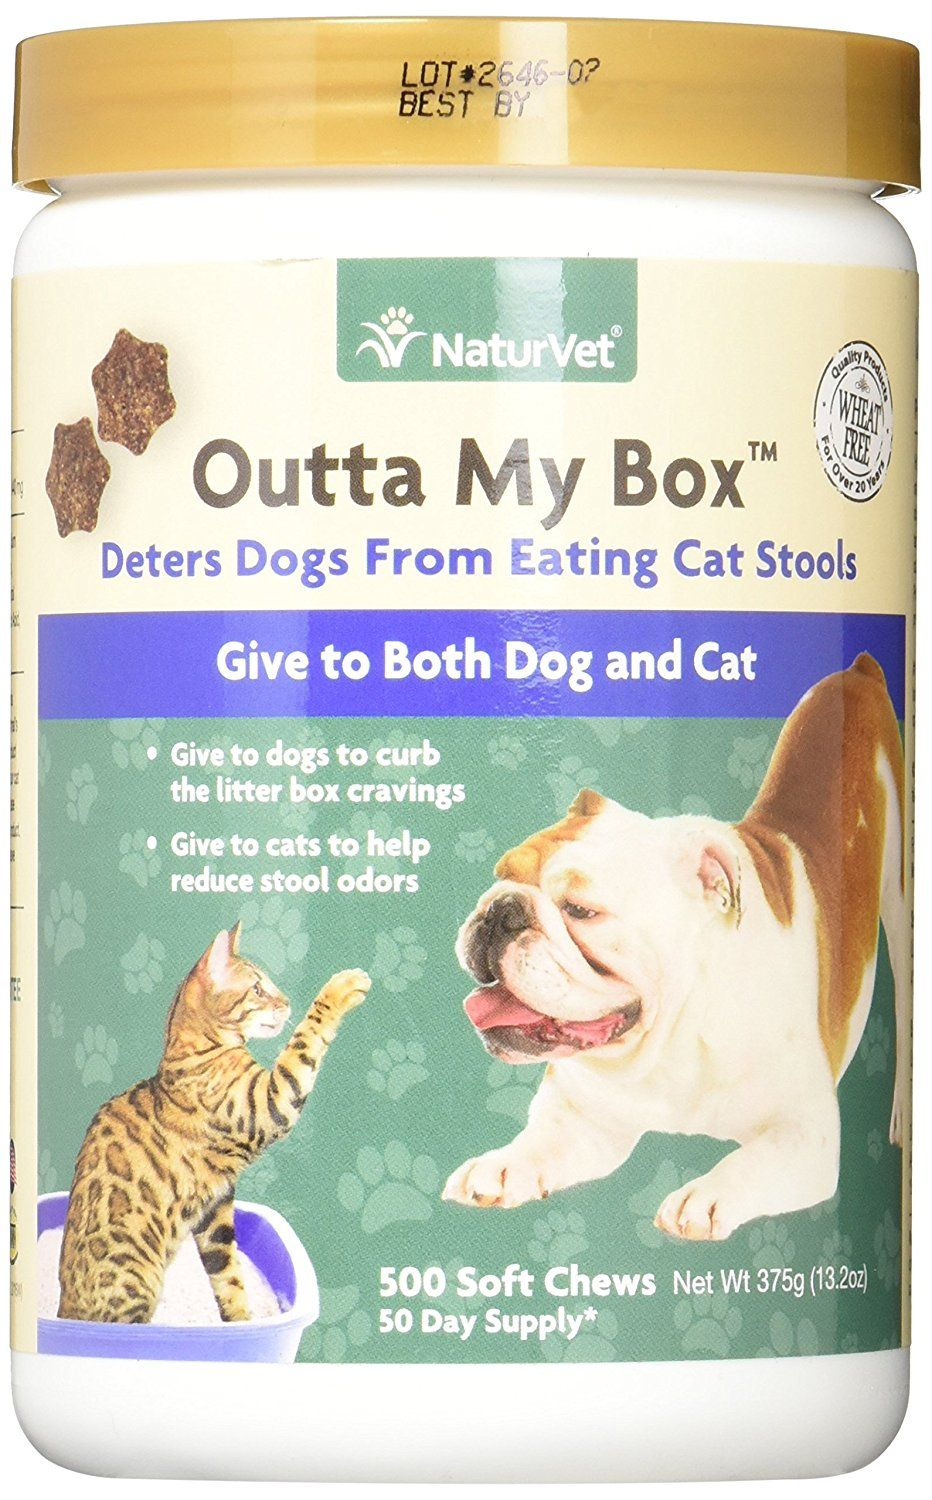 Naturvet Outta My Box Cat Stool Deterrant For Dogs And Cats 500 Soft Chews To View Further For This Item Visit The Image Link Thi Dogs Dog Cat Dog Diet